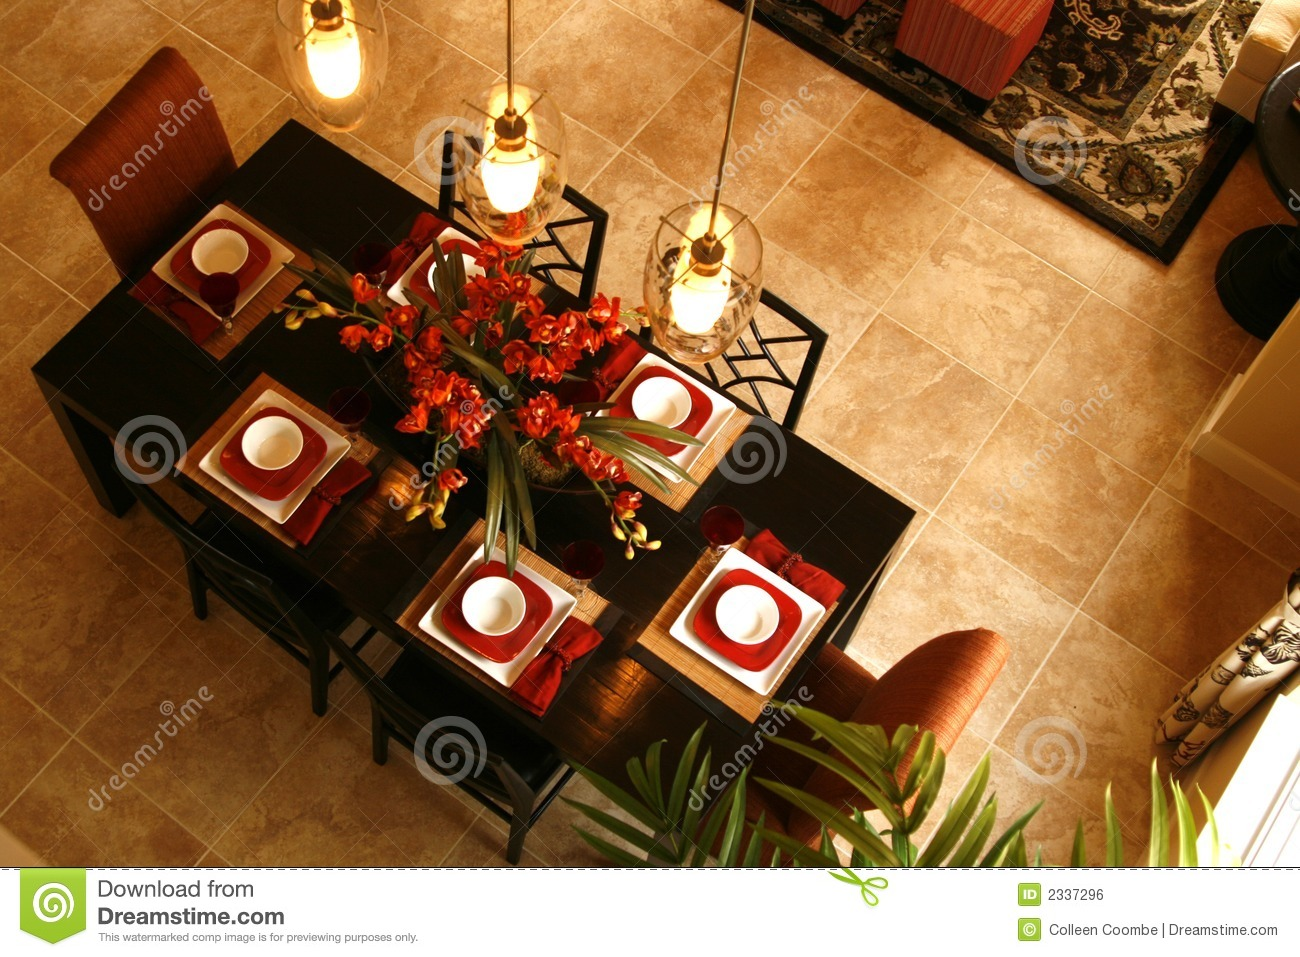 Dining Table From Above Royalty Free Stock Image - Image: 2337296